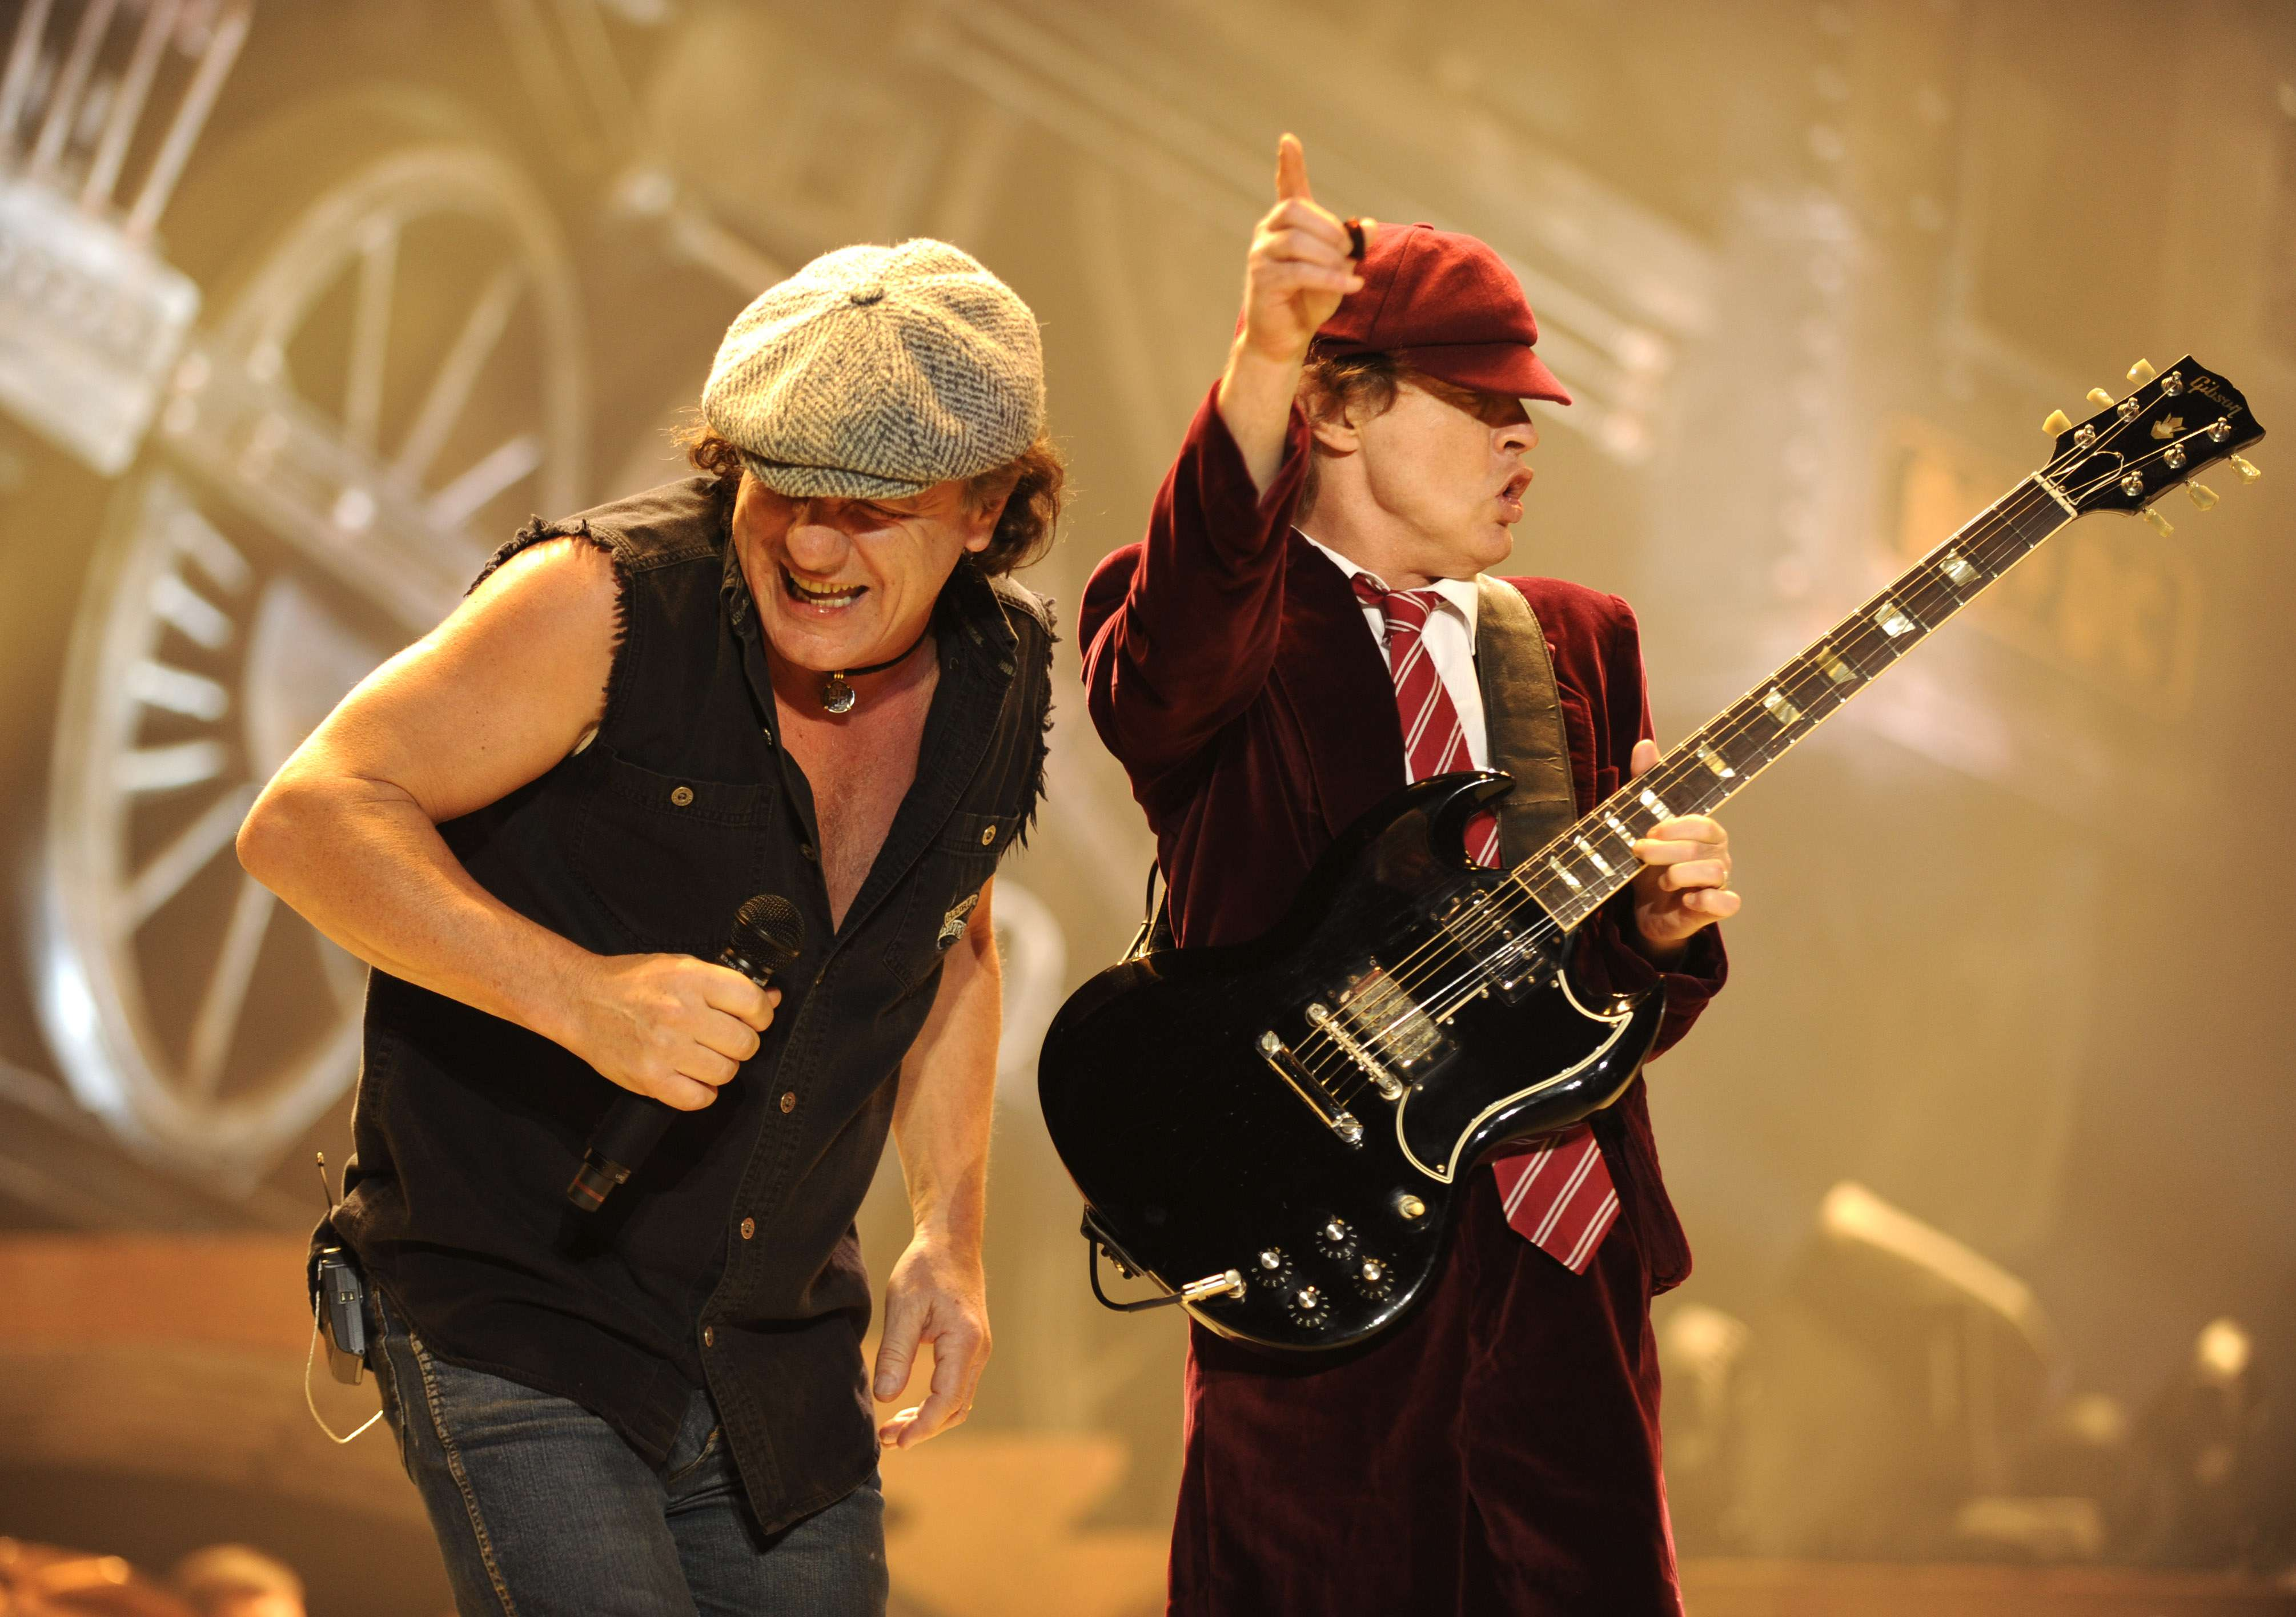 Lars Ulrich aposta em AC/DC como headliner do Glastonbury